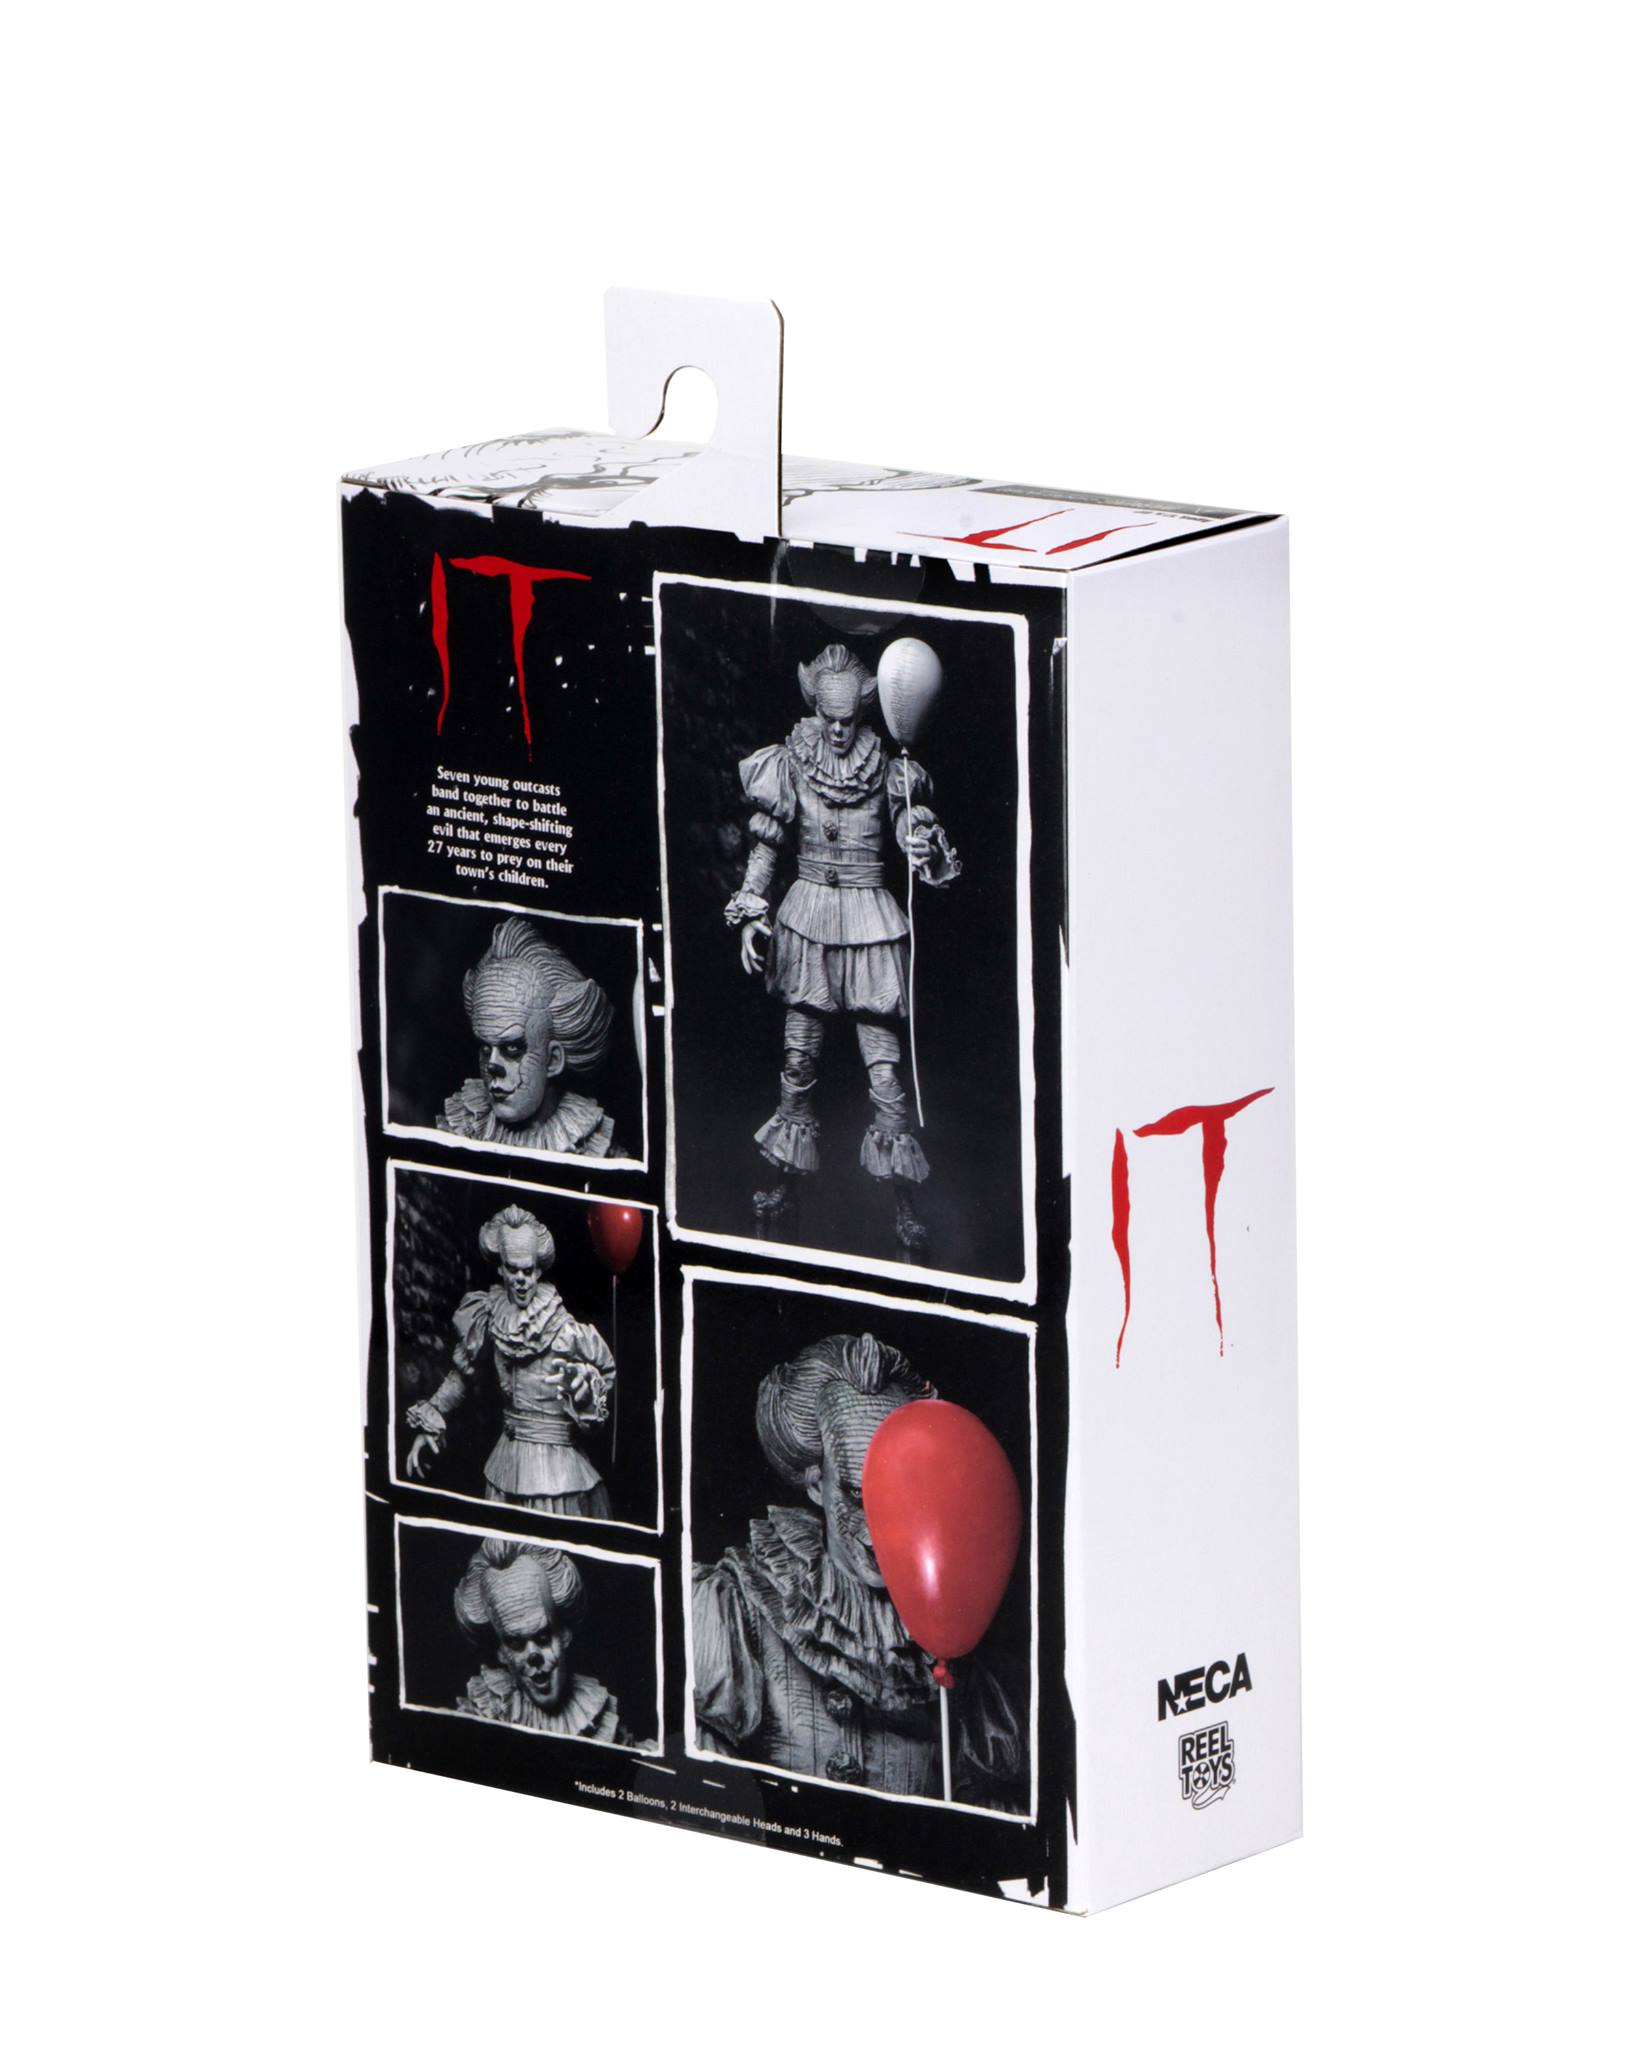 Neca Pennywise Sdcc 2019 06